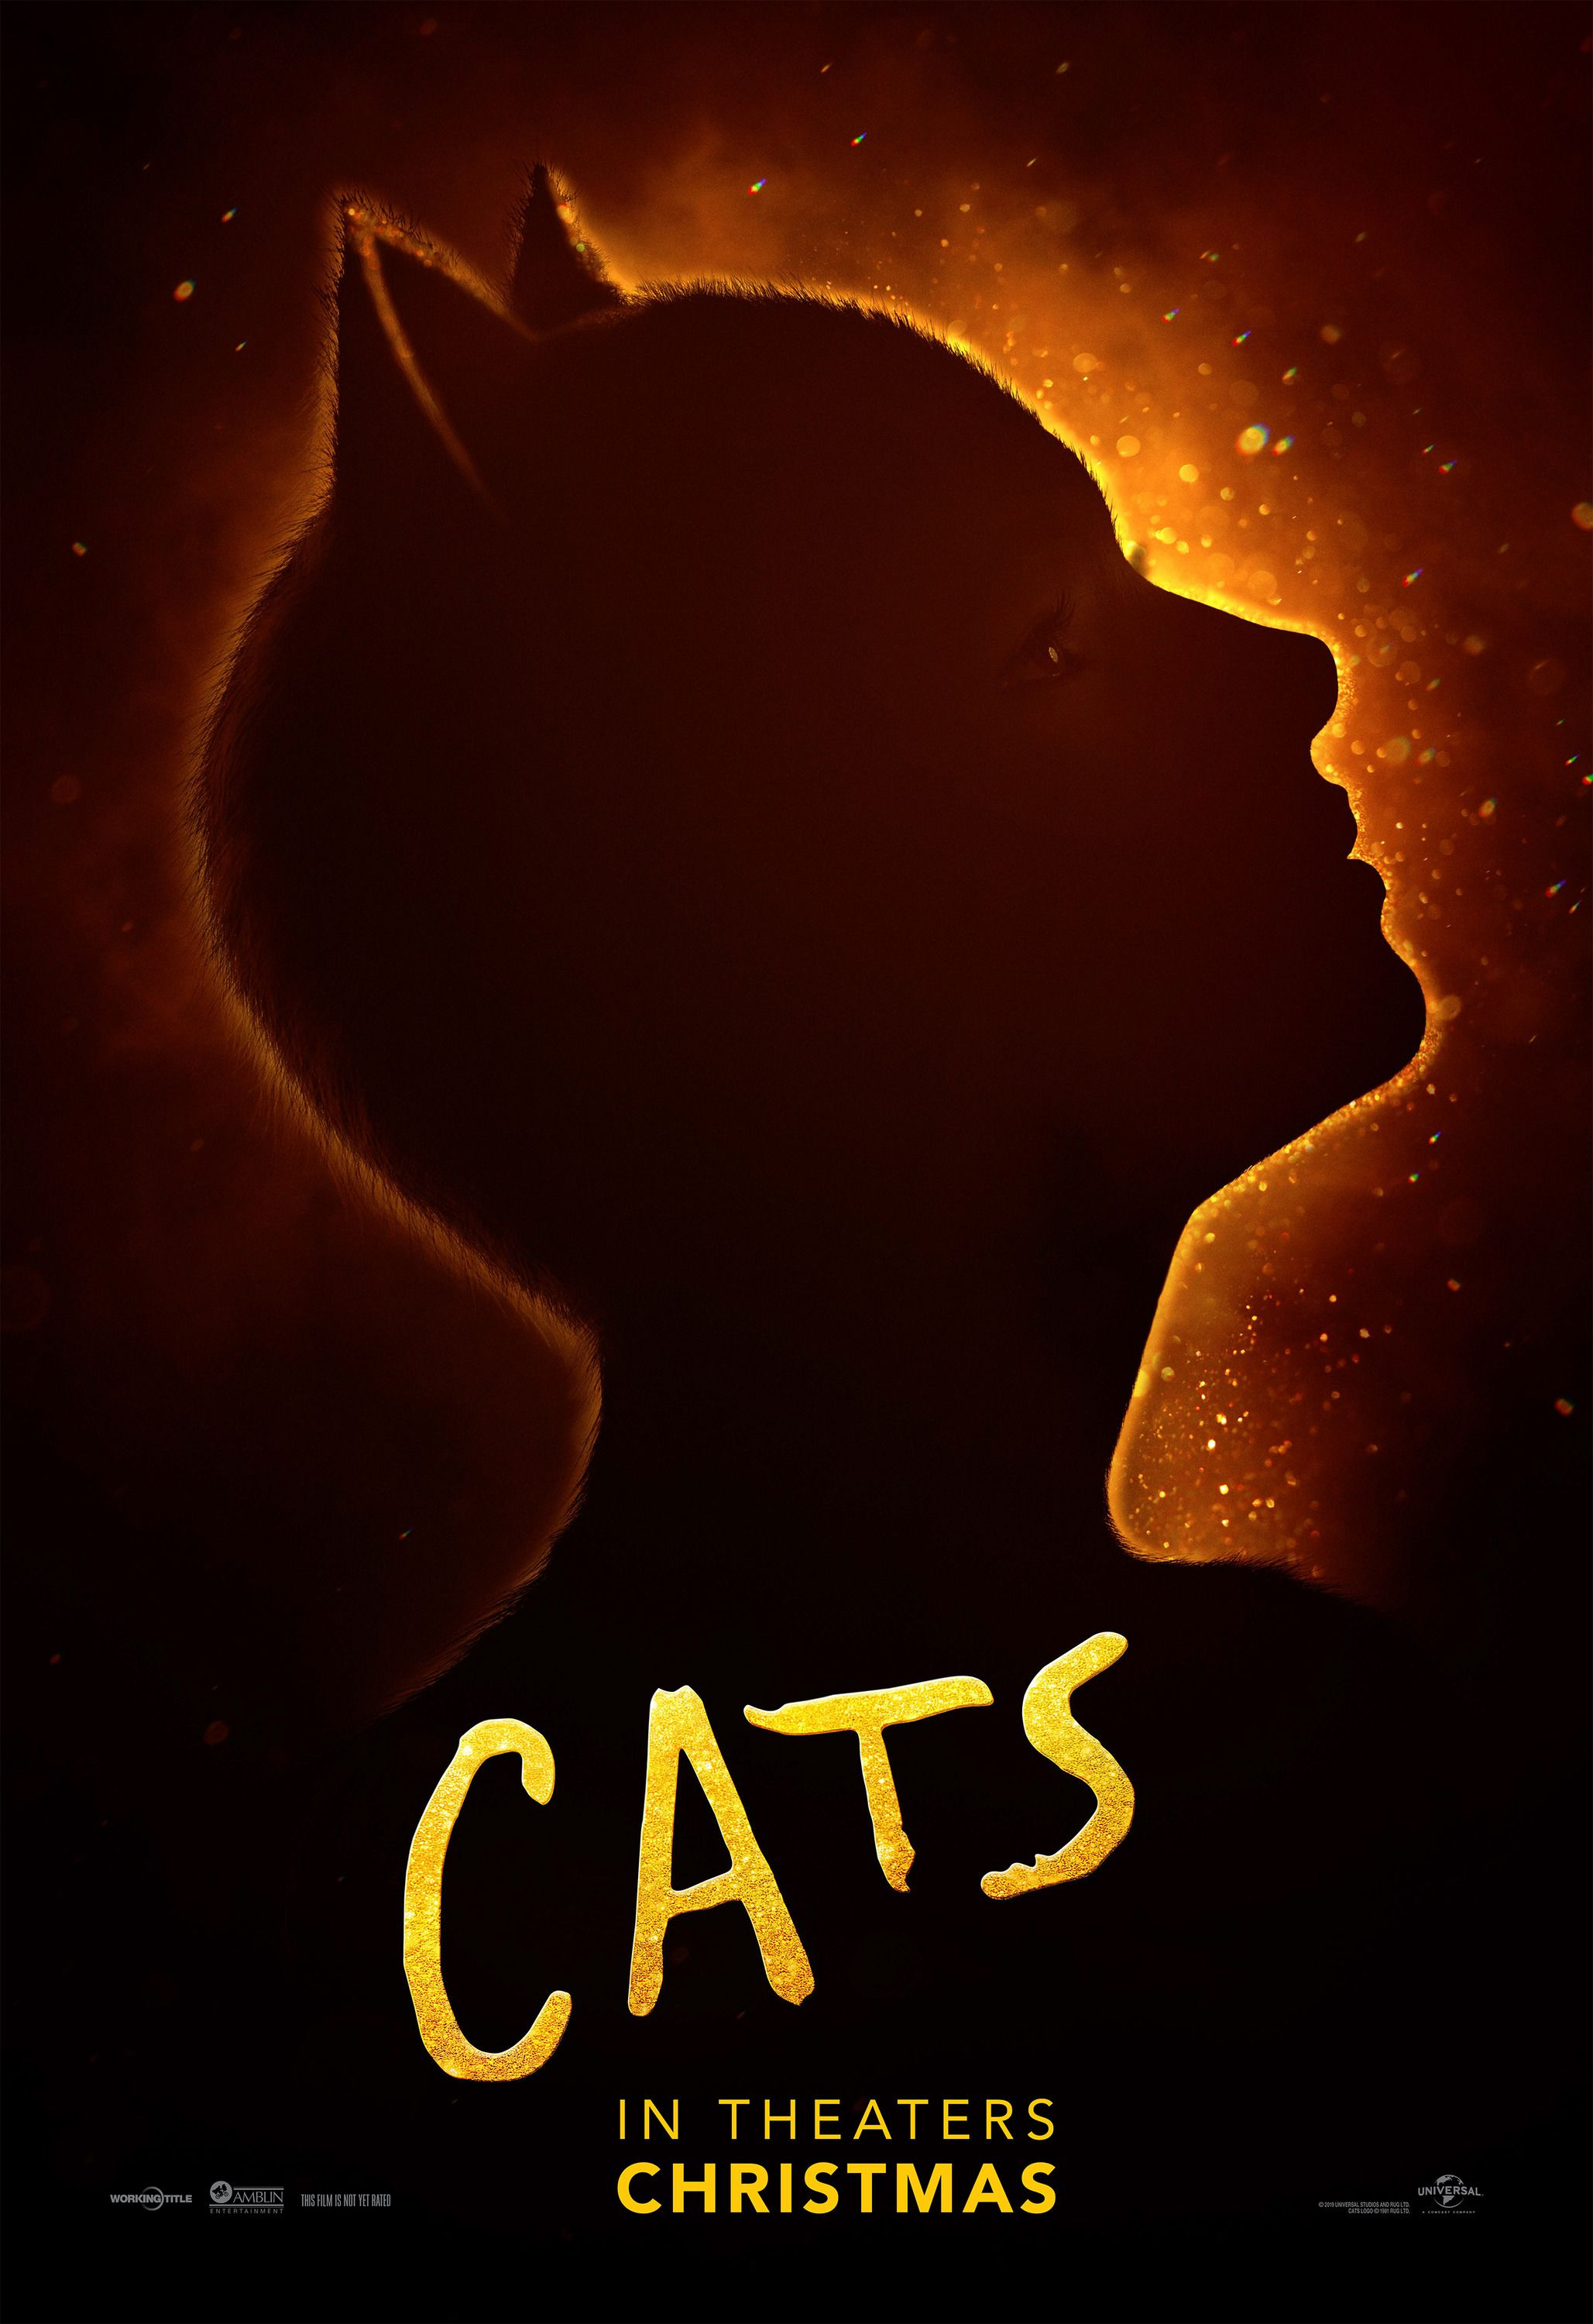 Cats 2019 Movie Posters Cat Movie Movie Posters Family Movie Poster